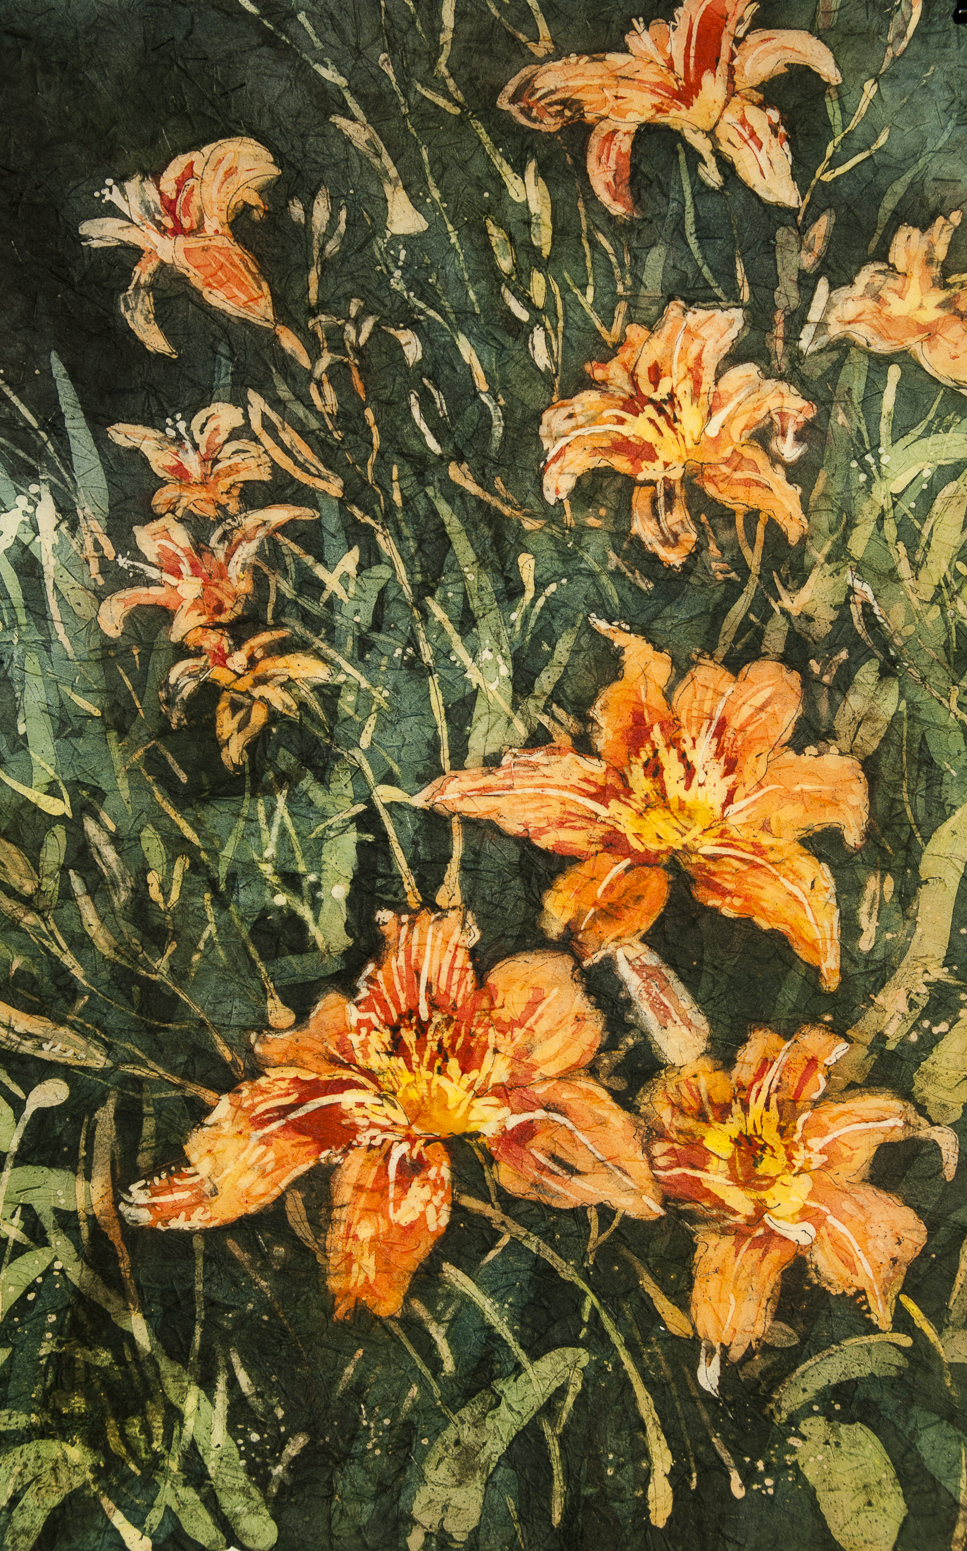 Ditch Lilies